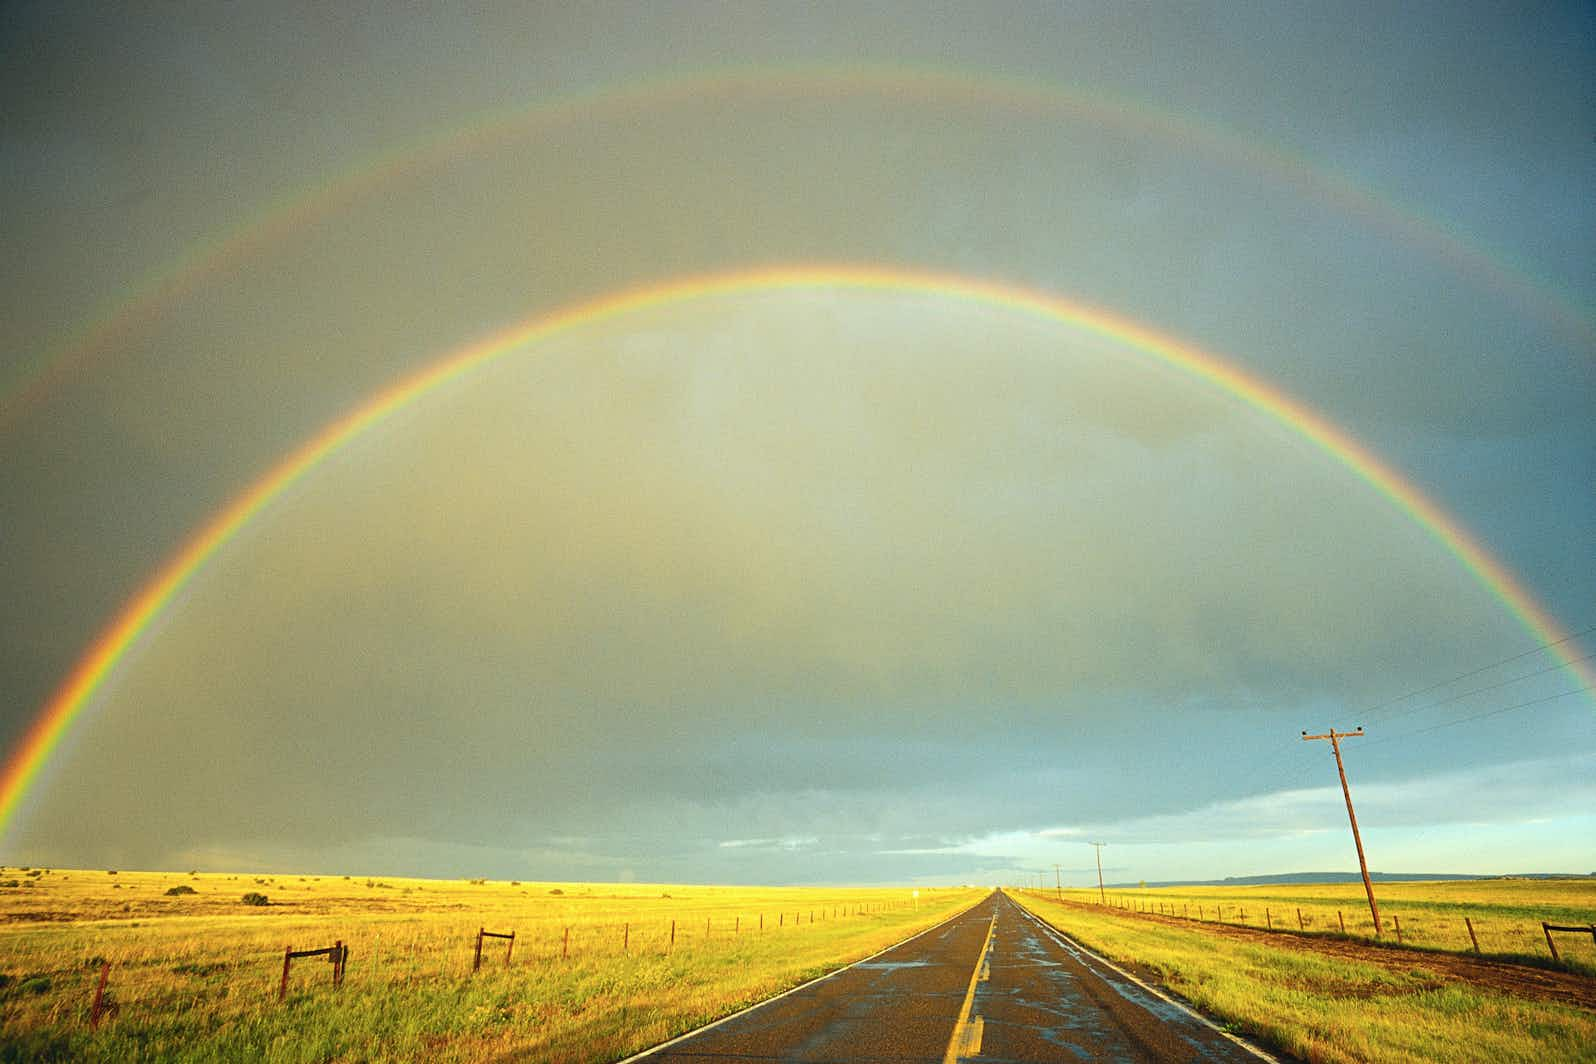 A rainbow stretches over a country road. Image by Fuse / Getty